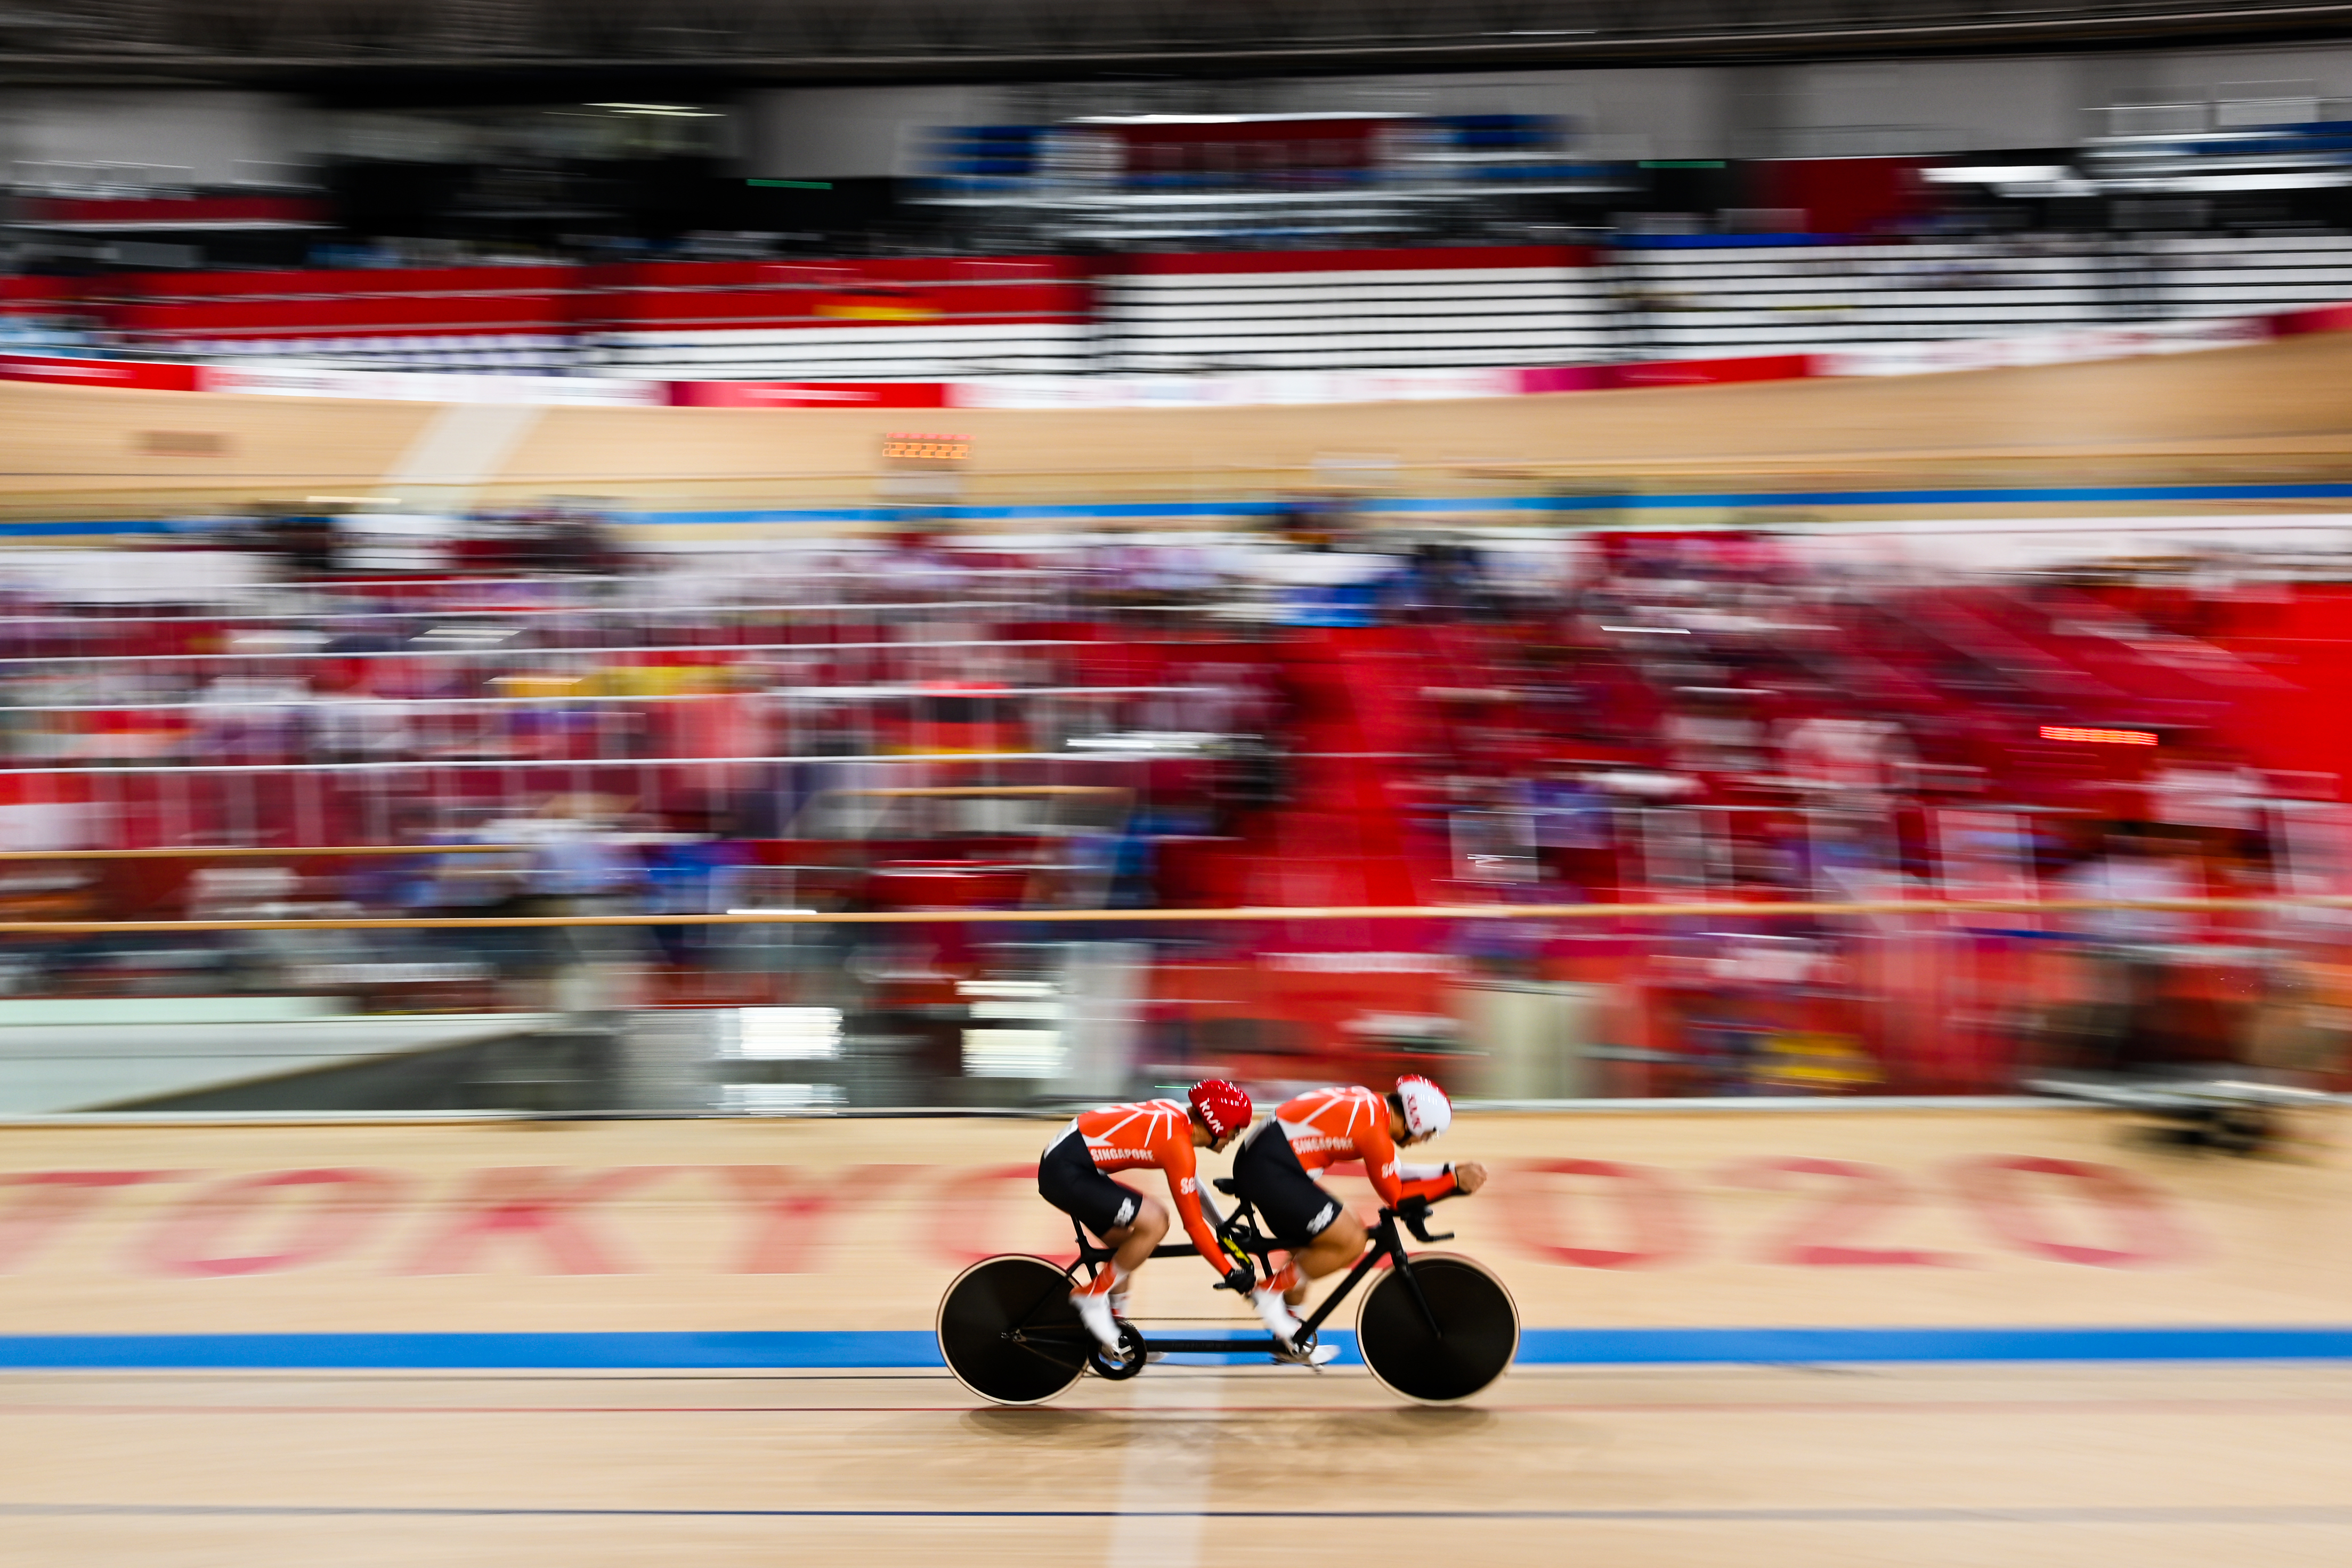 Tokyo 2020: TeamSG's Tandem Para-cycling duo of Steve Tee and Ang Kee Meng, shrugged off their recent training injuries to achieve Personal Best!